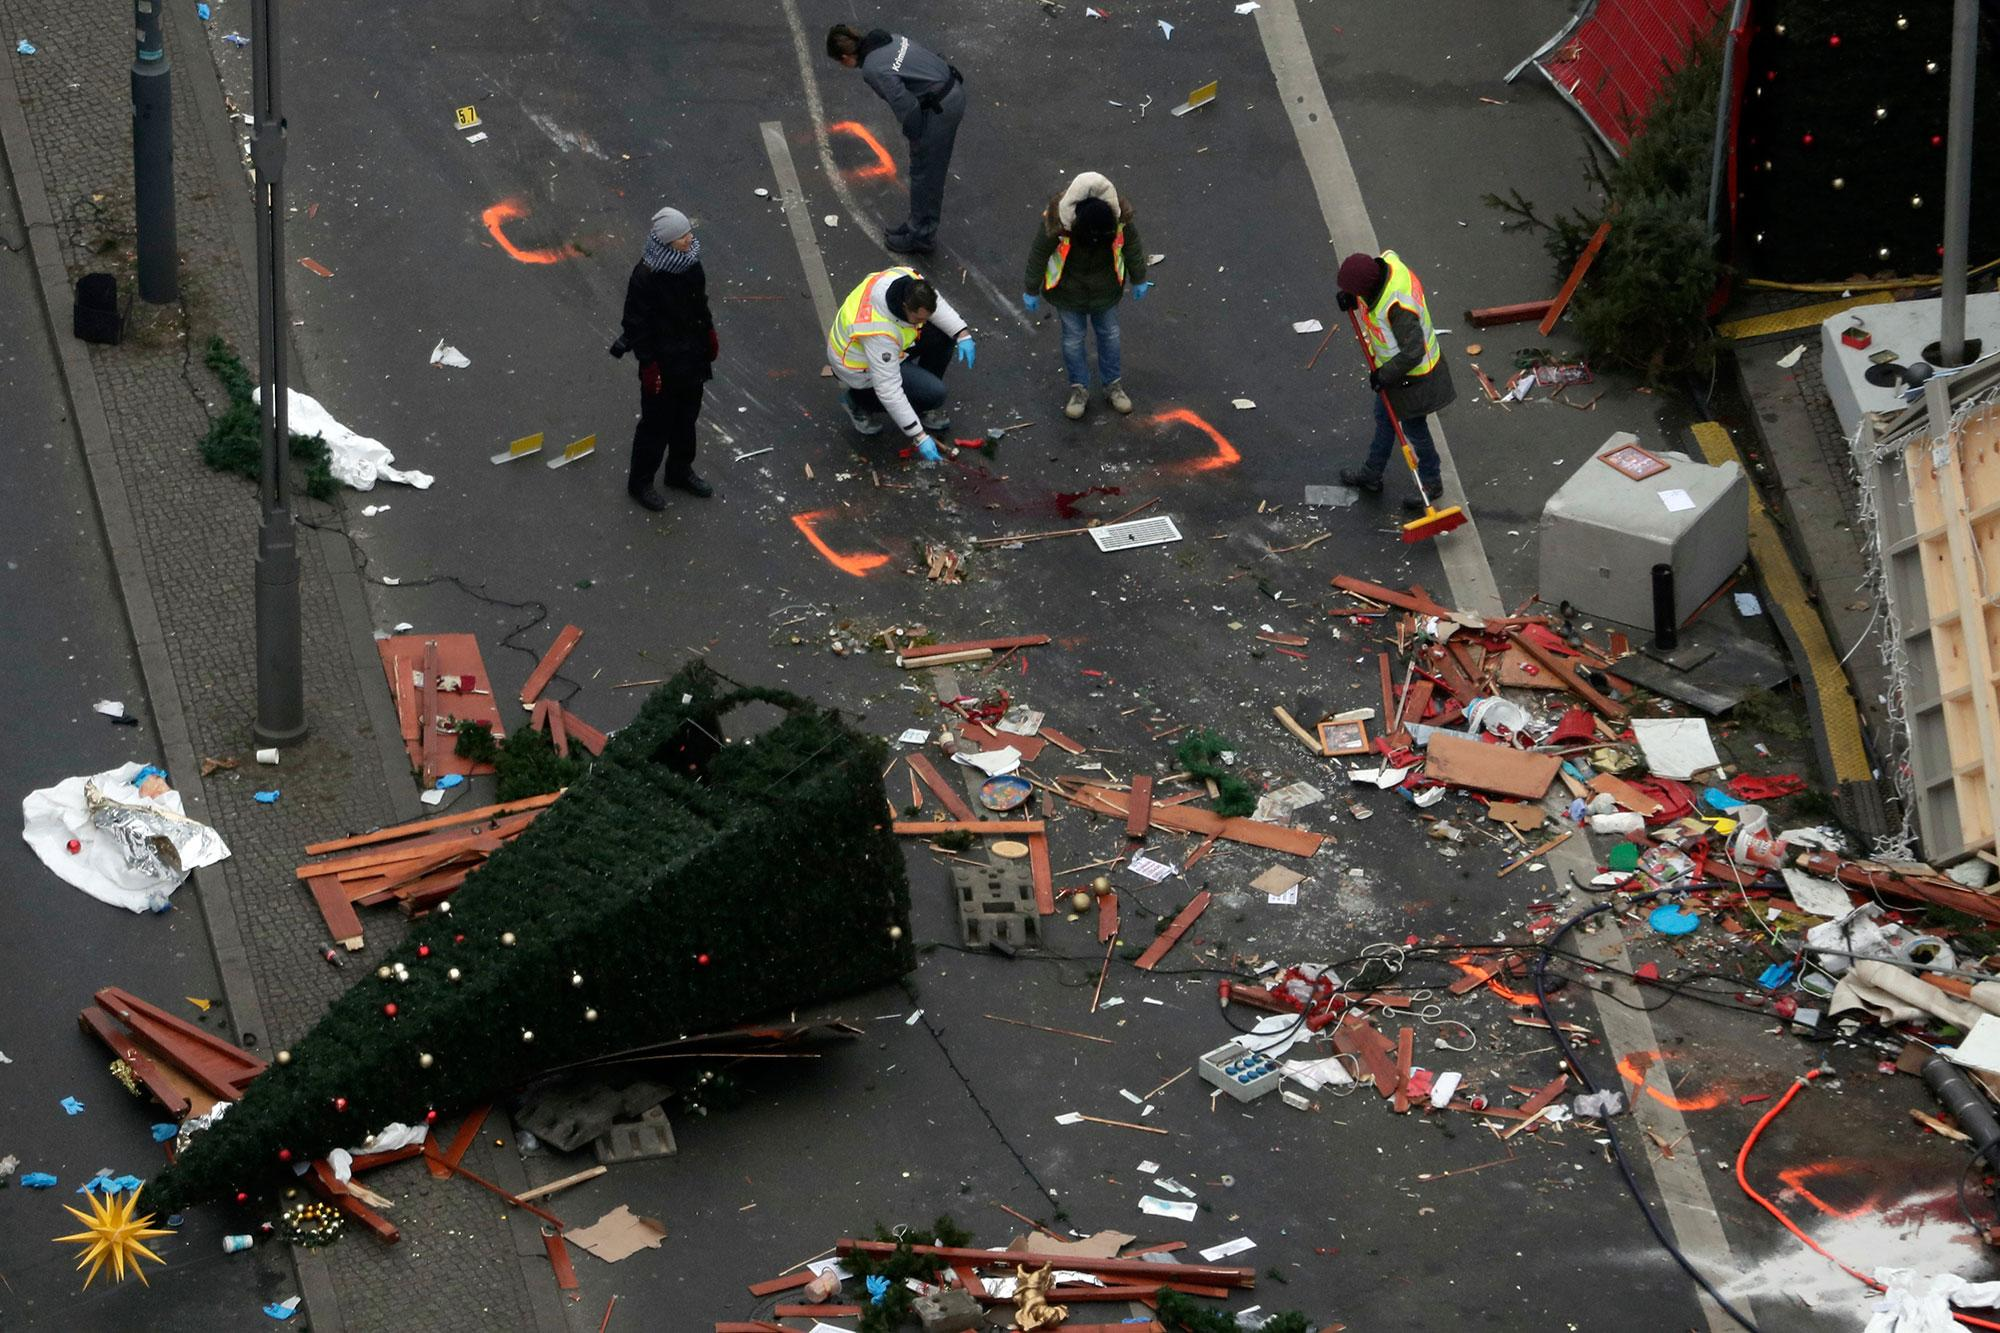 <p>Police officers inspect the crime scene in Berlin, Germany, Tuesday, Dec. 20, 2016, the day after a truck ran into a crowded Christmas market and killed several people. (AP Photo/Markus Schreiber) </p>